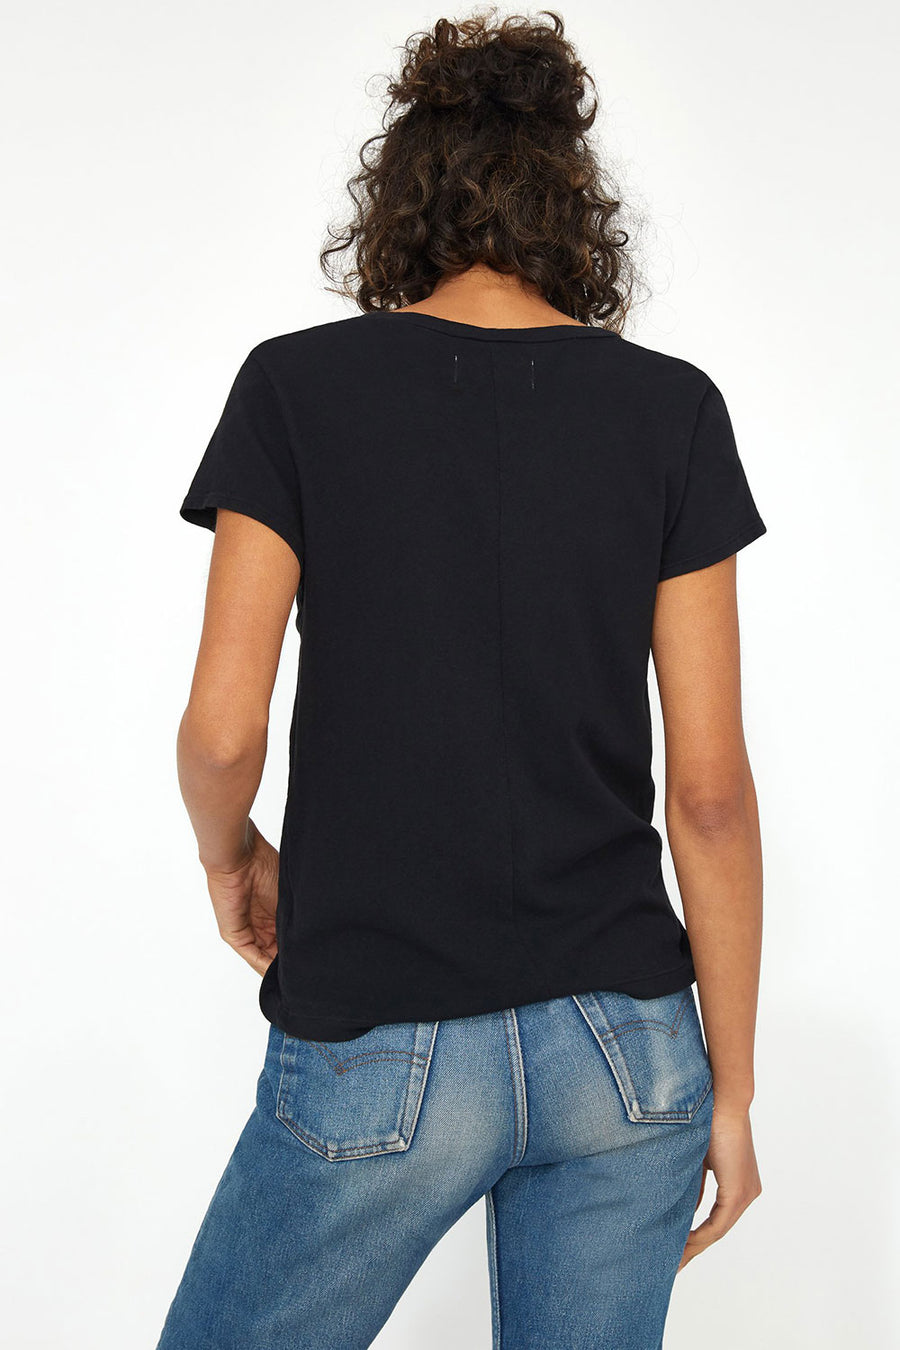 Luxe Frank | Tar | Tops NZ | LACAUSA NZ | Black Box Boutique Auckland | Womens Fashion NZ